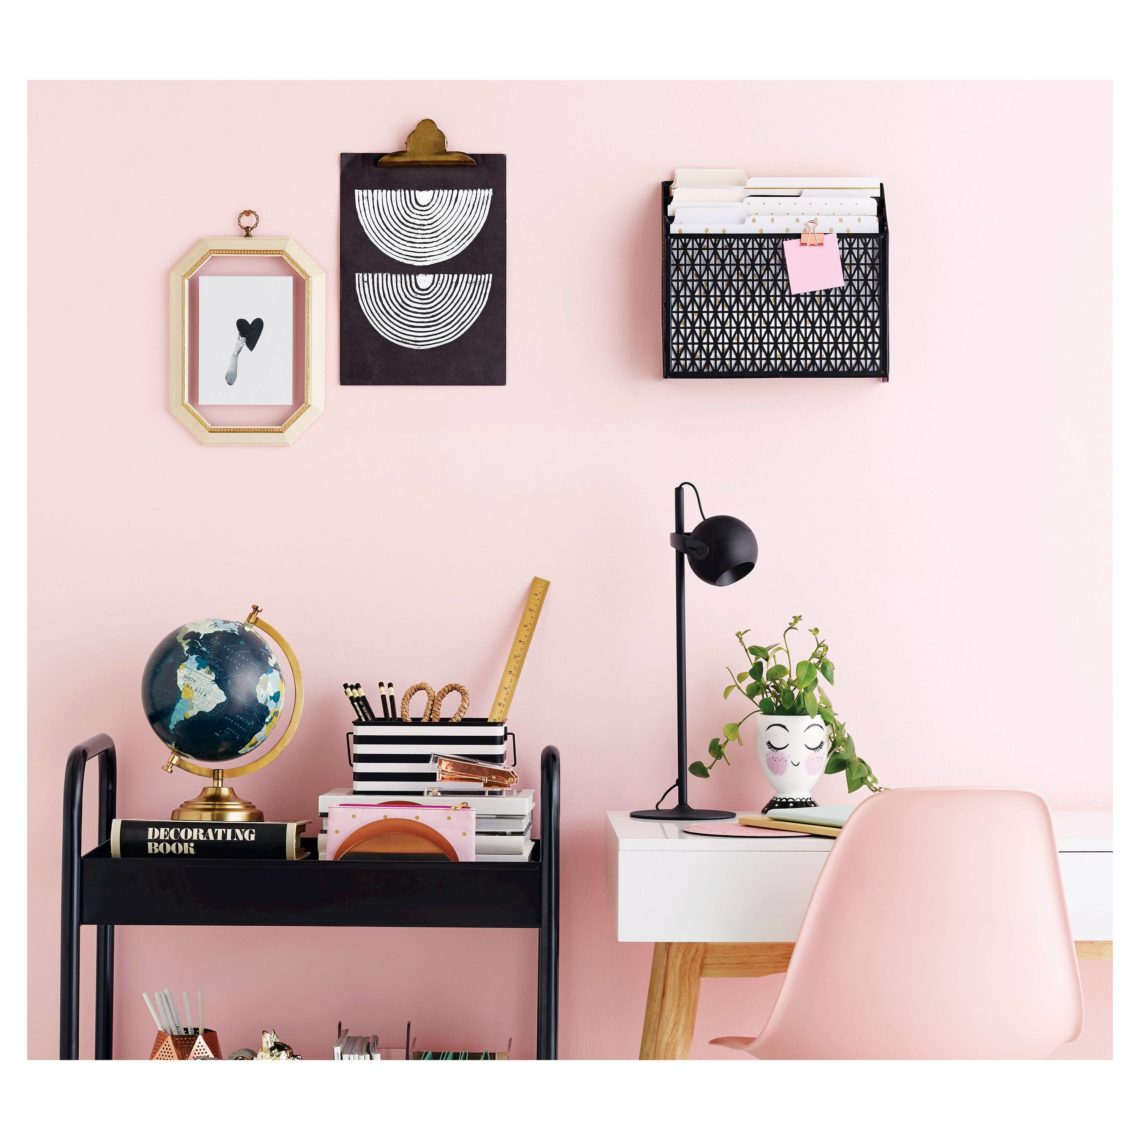 The 25 Cutest and most helpful office/desk accessories